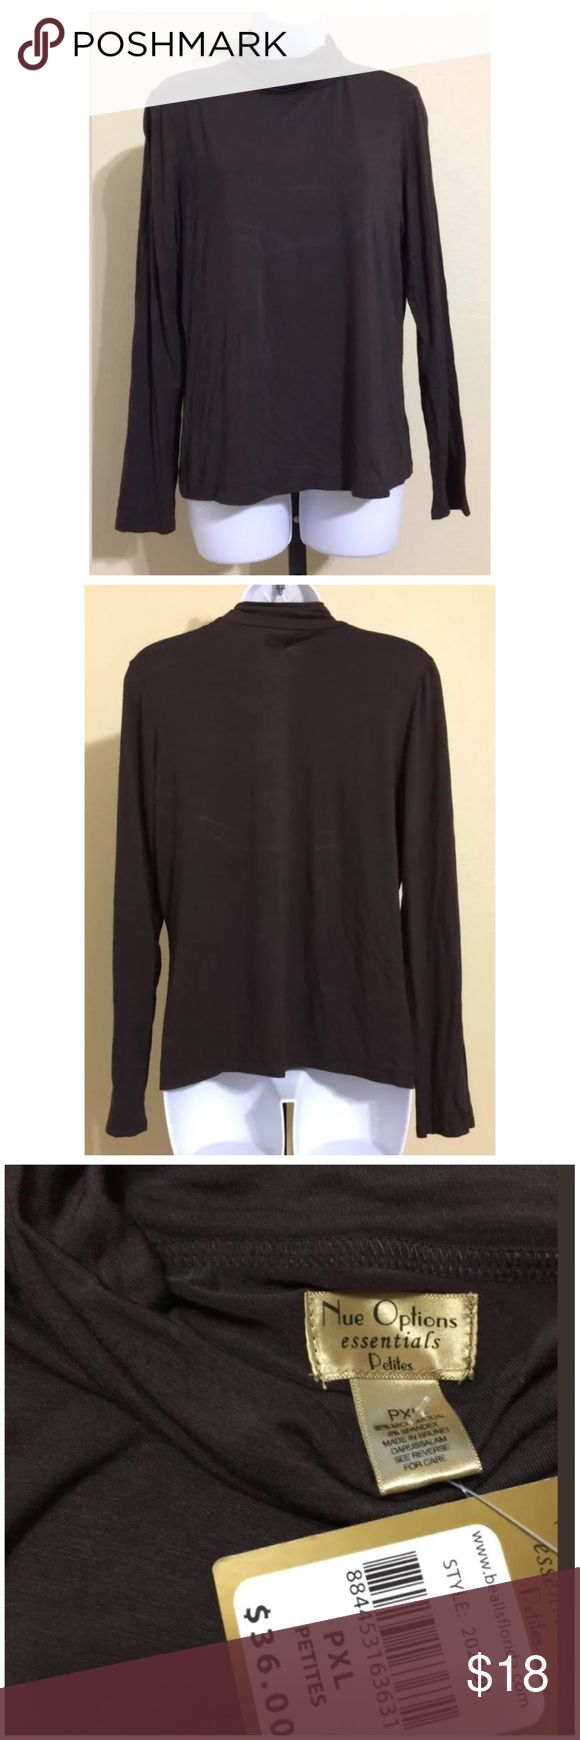 Nue Options Petite Turtleneck Size PXL Nue Options Essentials Petite Women's Turtleneck Top Size PXL Brown Color Long Sleeve Machine Washable 92% Micromodal 8% Spandex Armpit to Armpit Approx. 20 Inches Length from Rear Collar Seam Approx. 23 Inches Shoulder Approx. 16 Inches Sleeve From Shoulder Seam Approx. 24 Inches Compare Measurements To Your Own Well Fitting Garment To Ensure A Great Fit MSRP $ 36.00 New With Tag Nue Options Tops